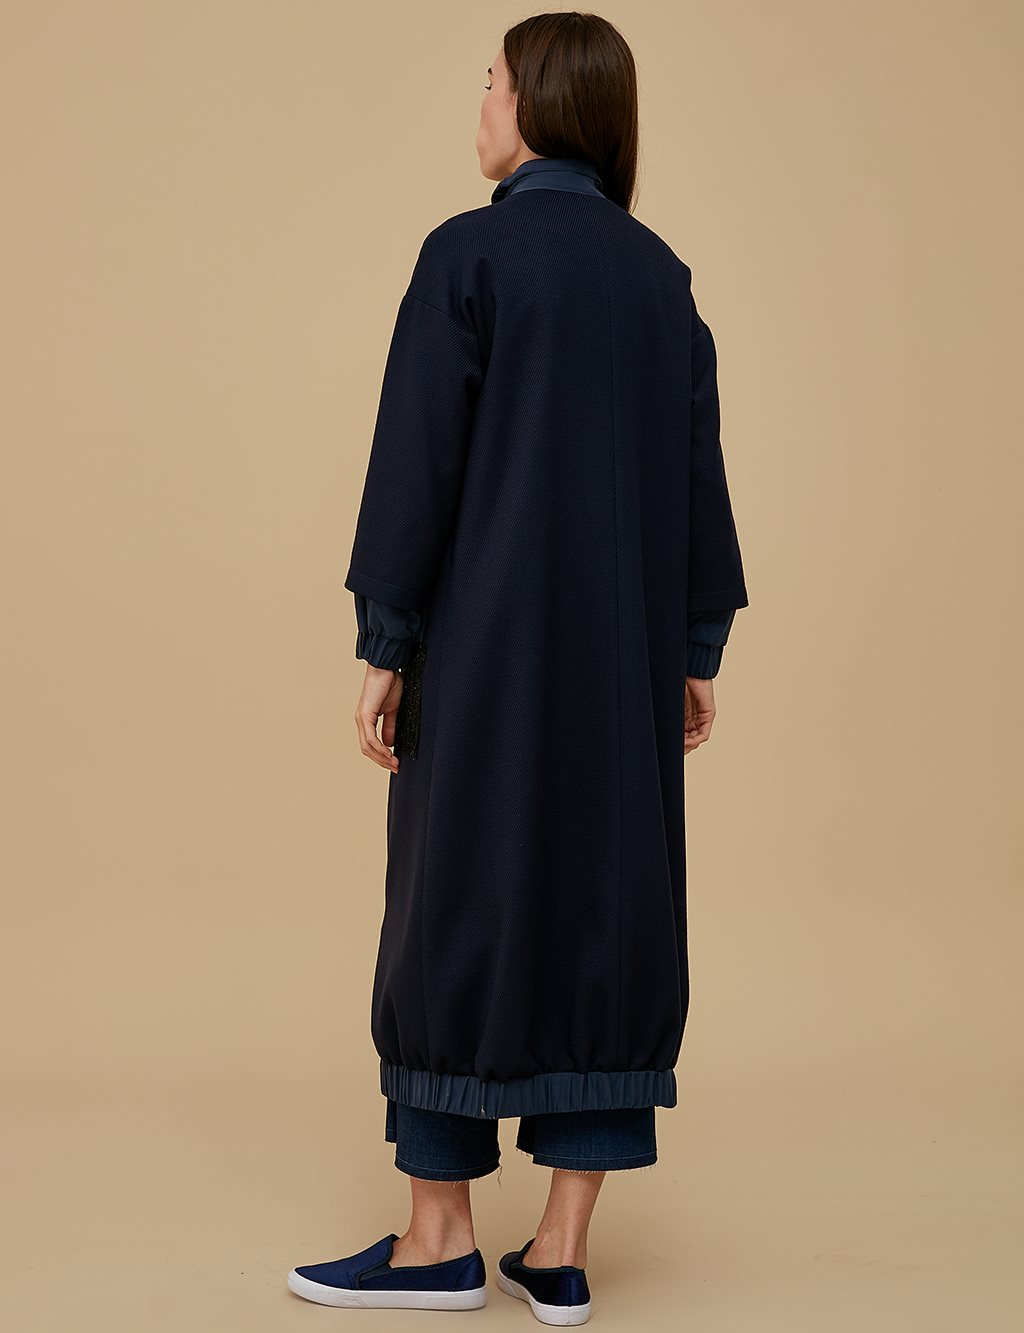 Pocket Detailed Overcoat A9 25044 Navy